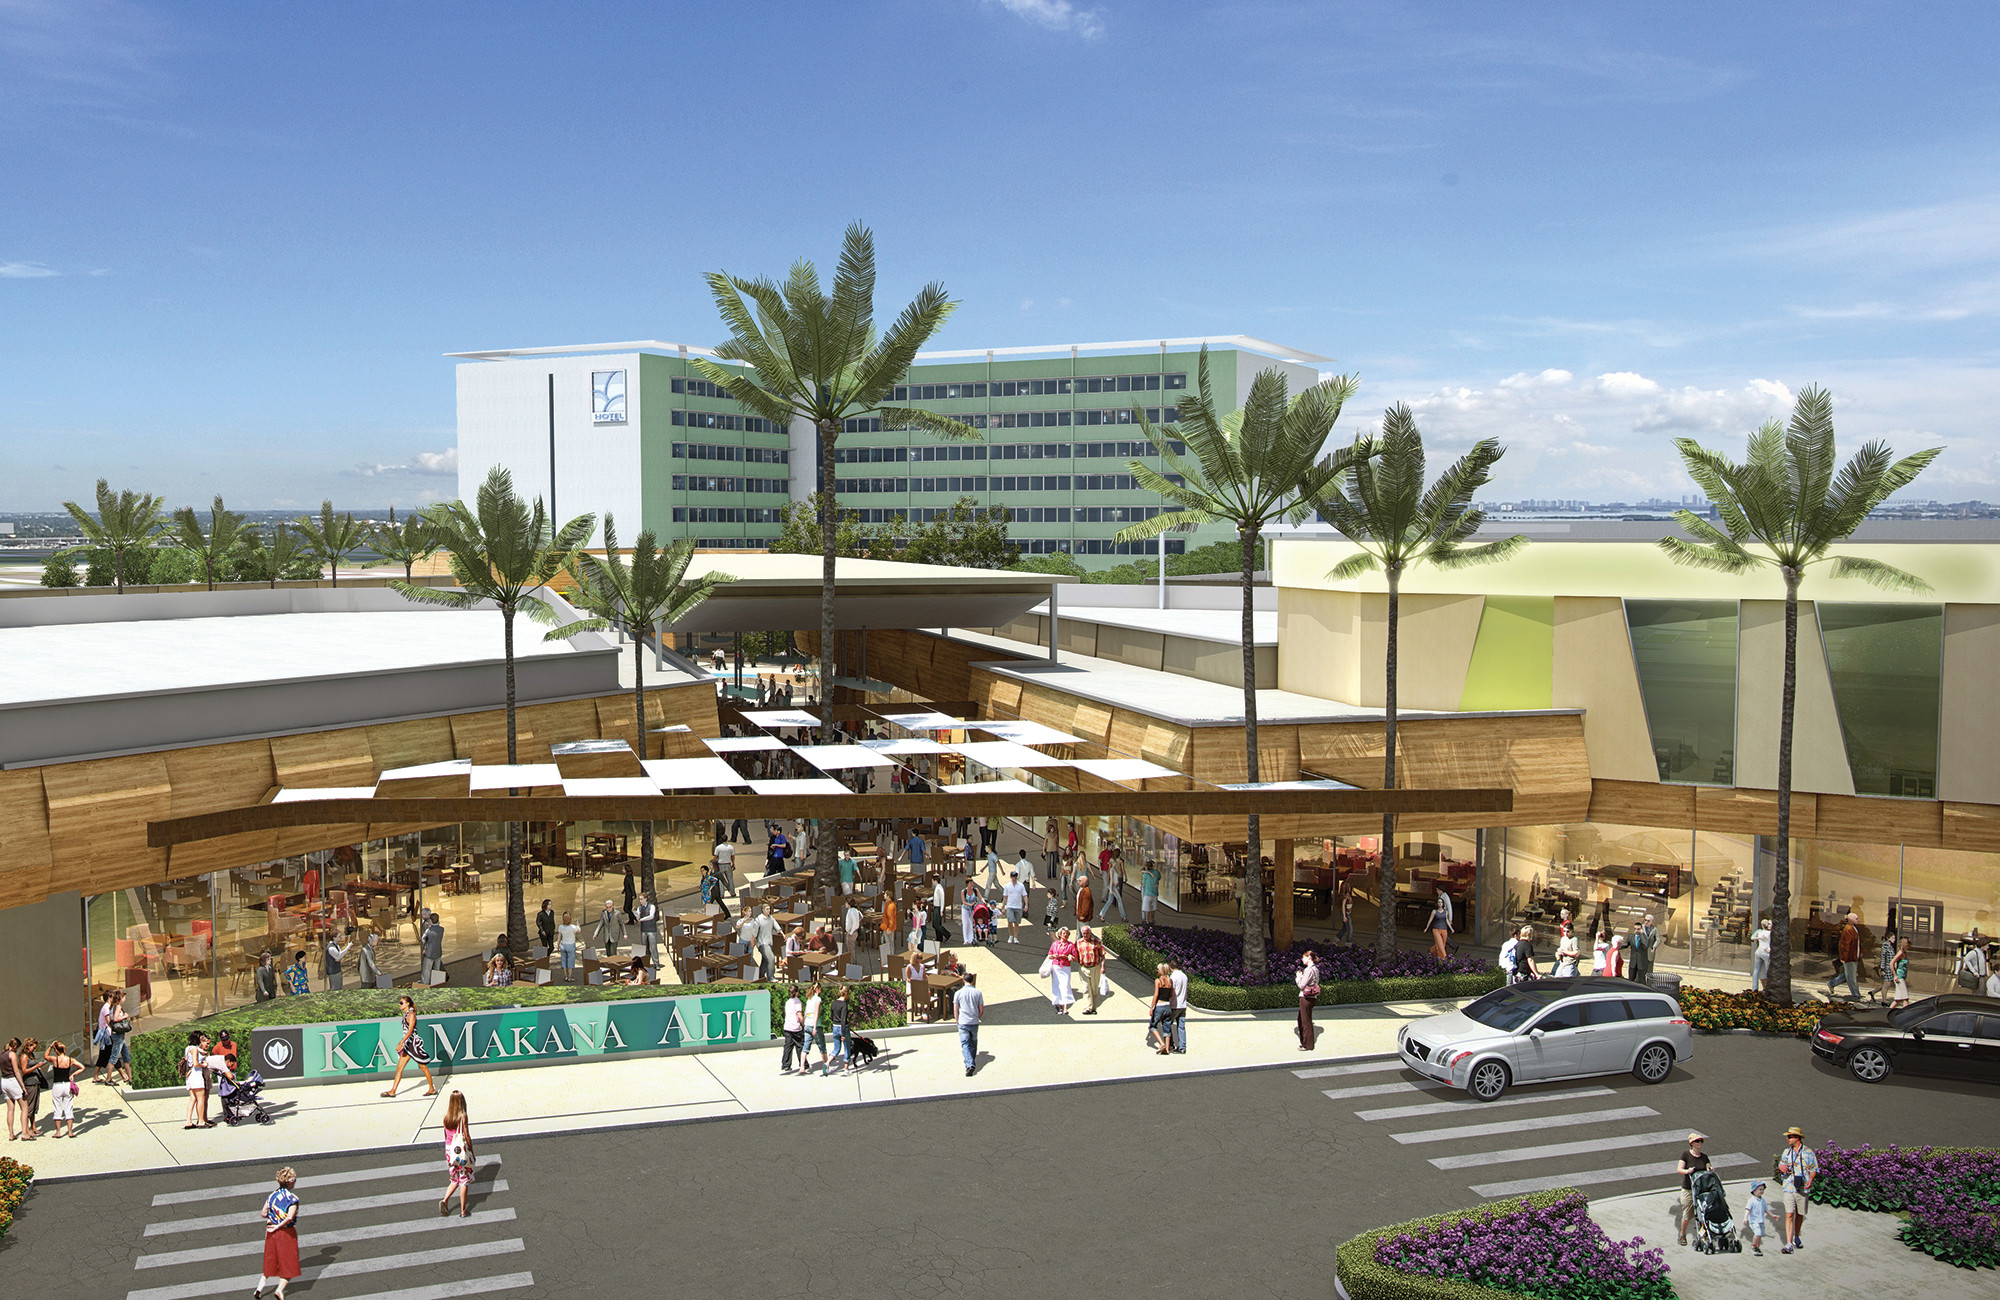 ka makana alii shopping mall_73986